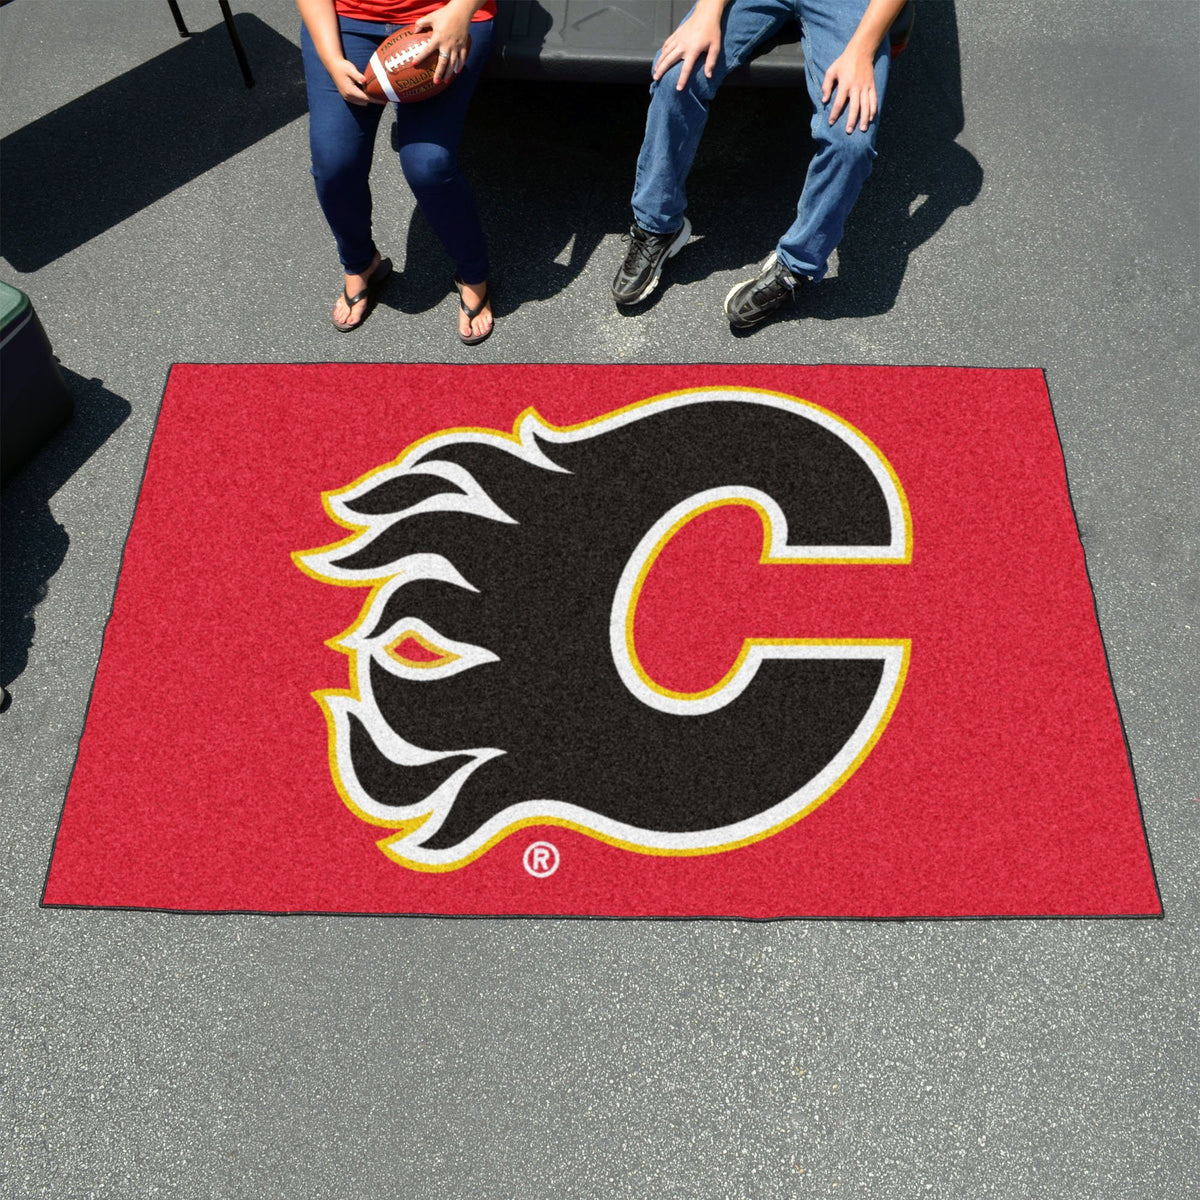 NHL - Ulti-Mat NHL Mats, Rectangular Mats, Ulti-Mat, NHL, Home Fan Mats Calgary Flames